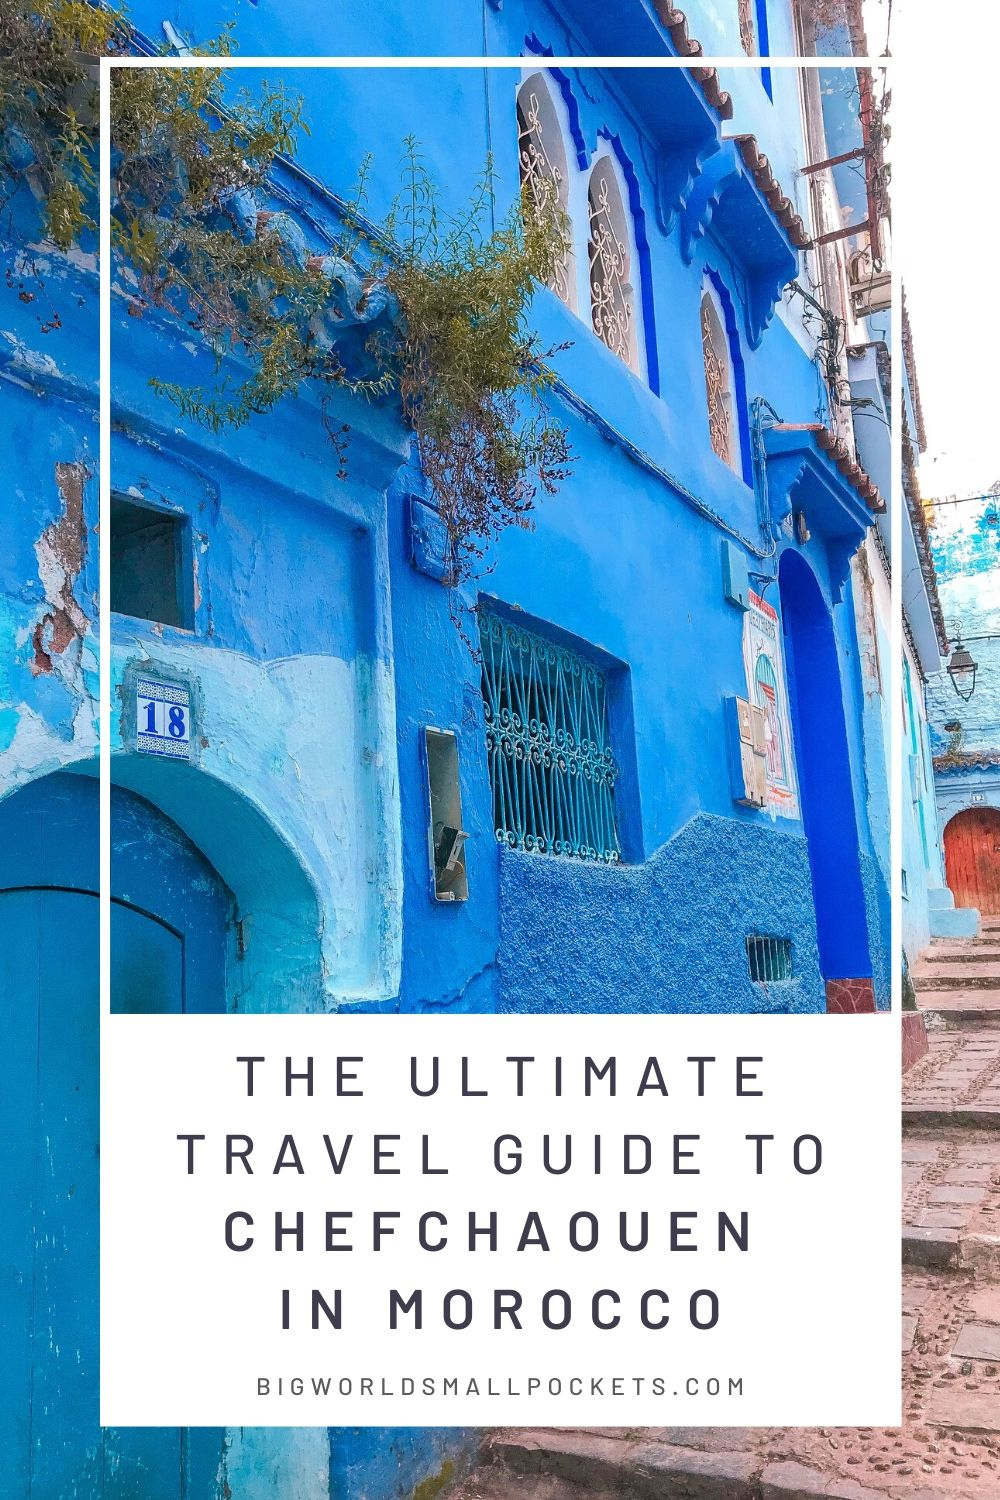 Utimate Travel Guide to Chefchaouen in Morocco